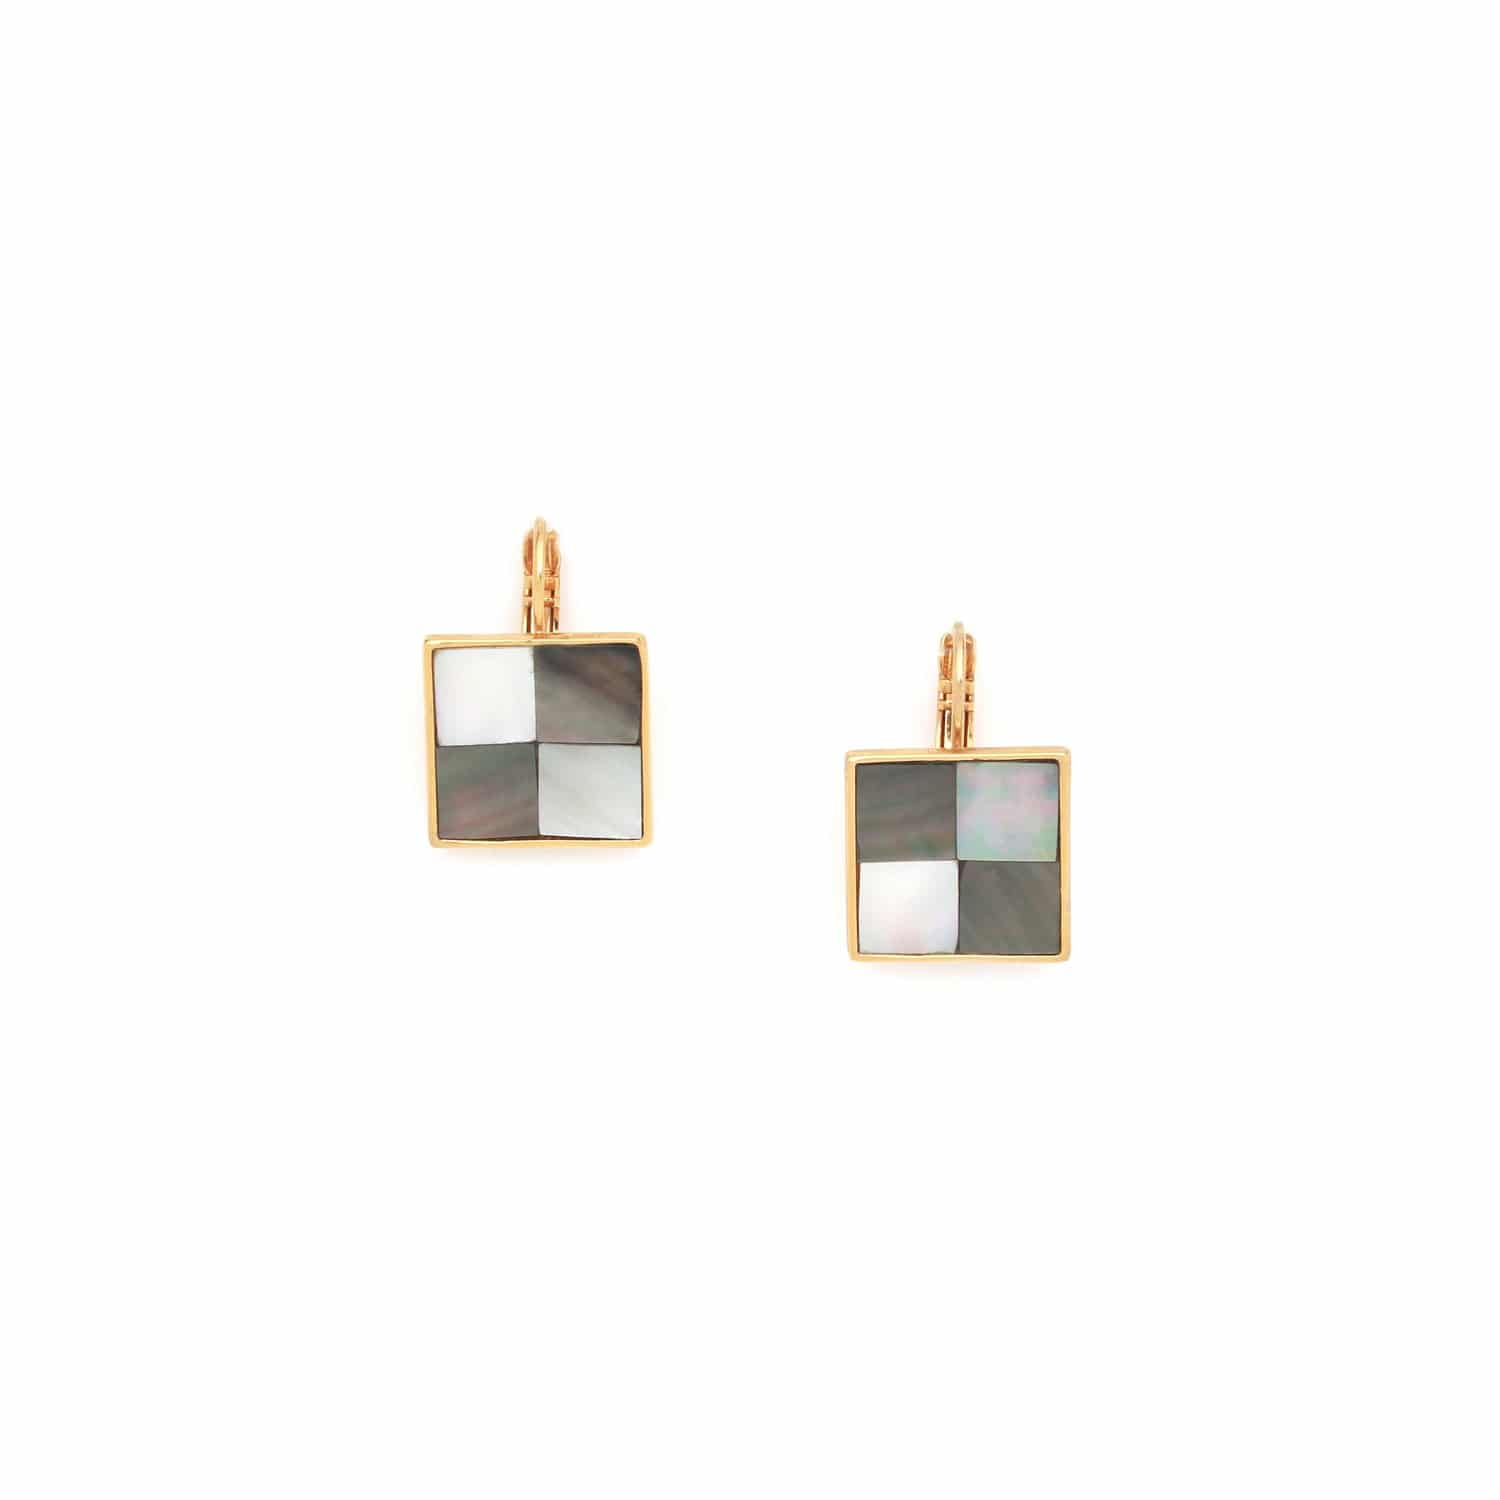 LE SQUARE small french hook earrings